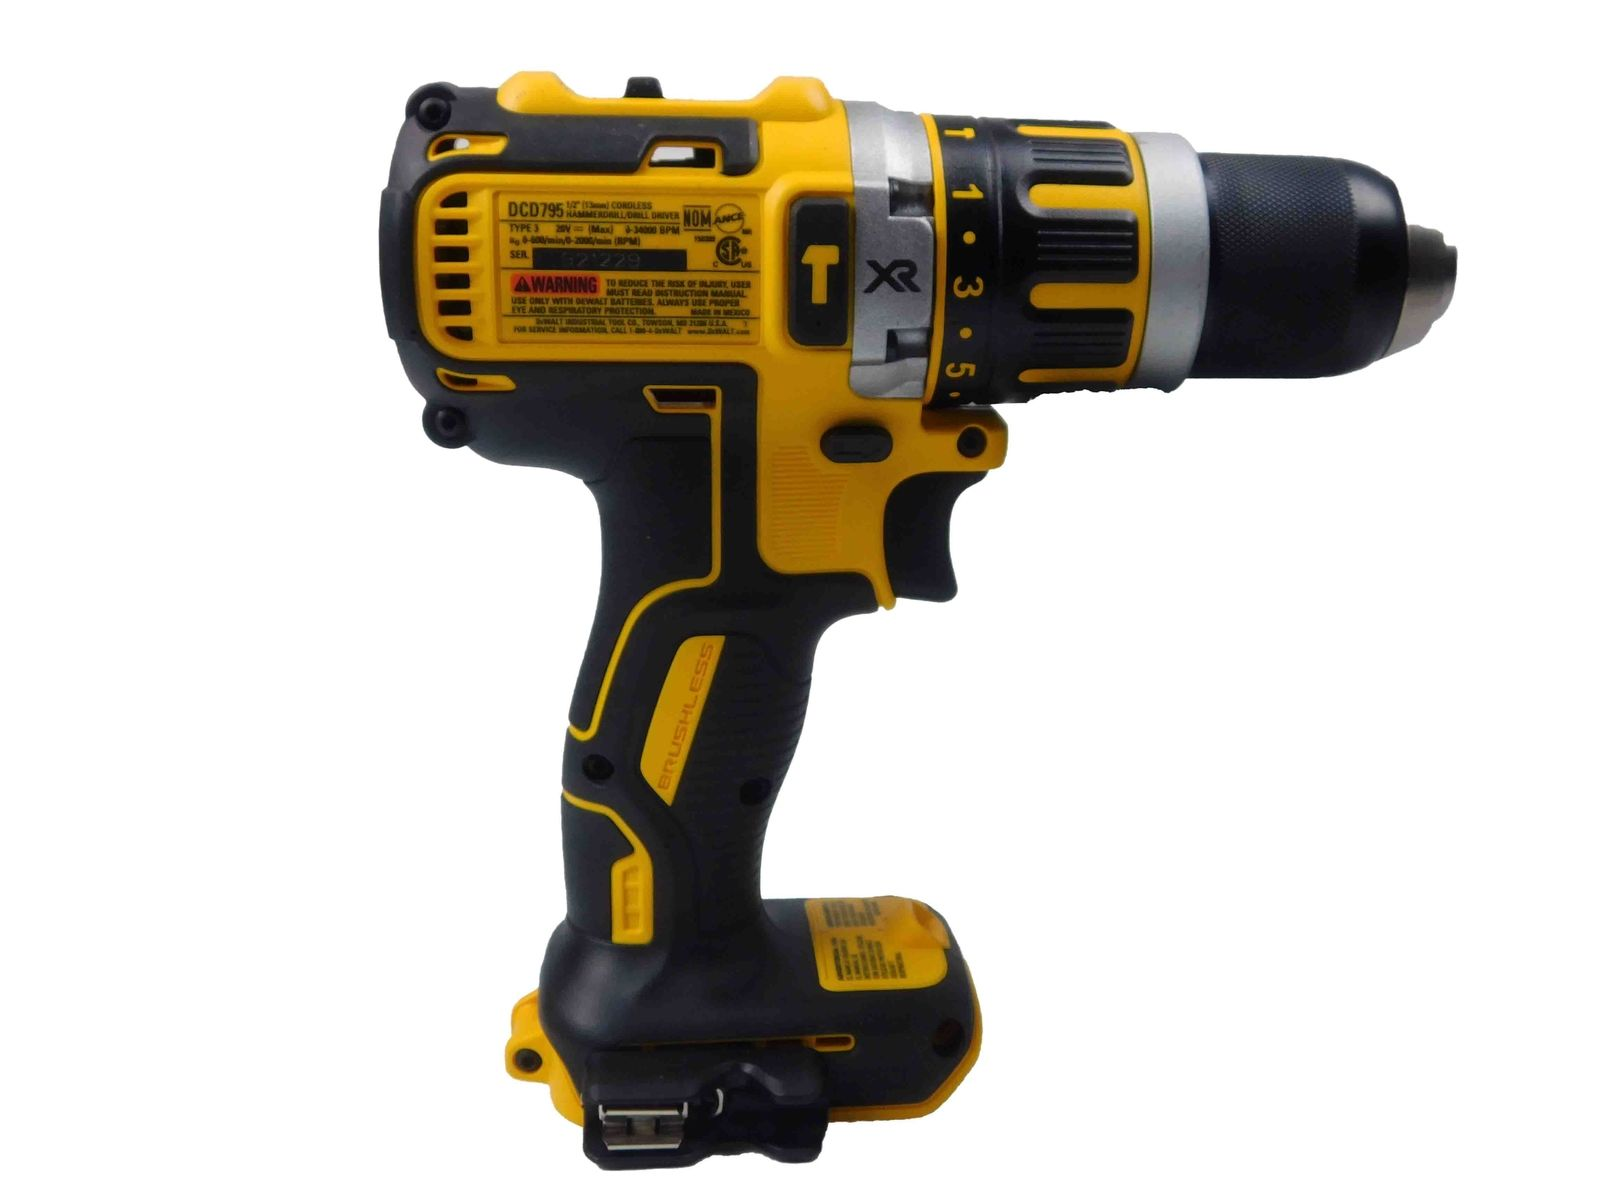 Dewalt-DCD796B-20V-Brushless-Hammer-Drill-DCB204-4-Ah-Battery-Pack-image-3